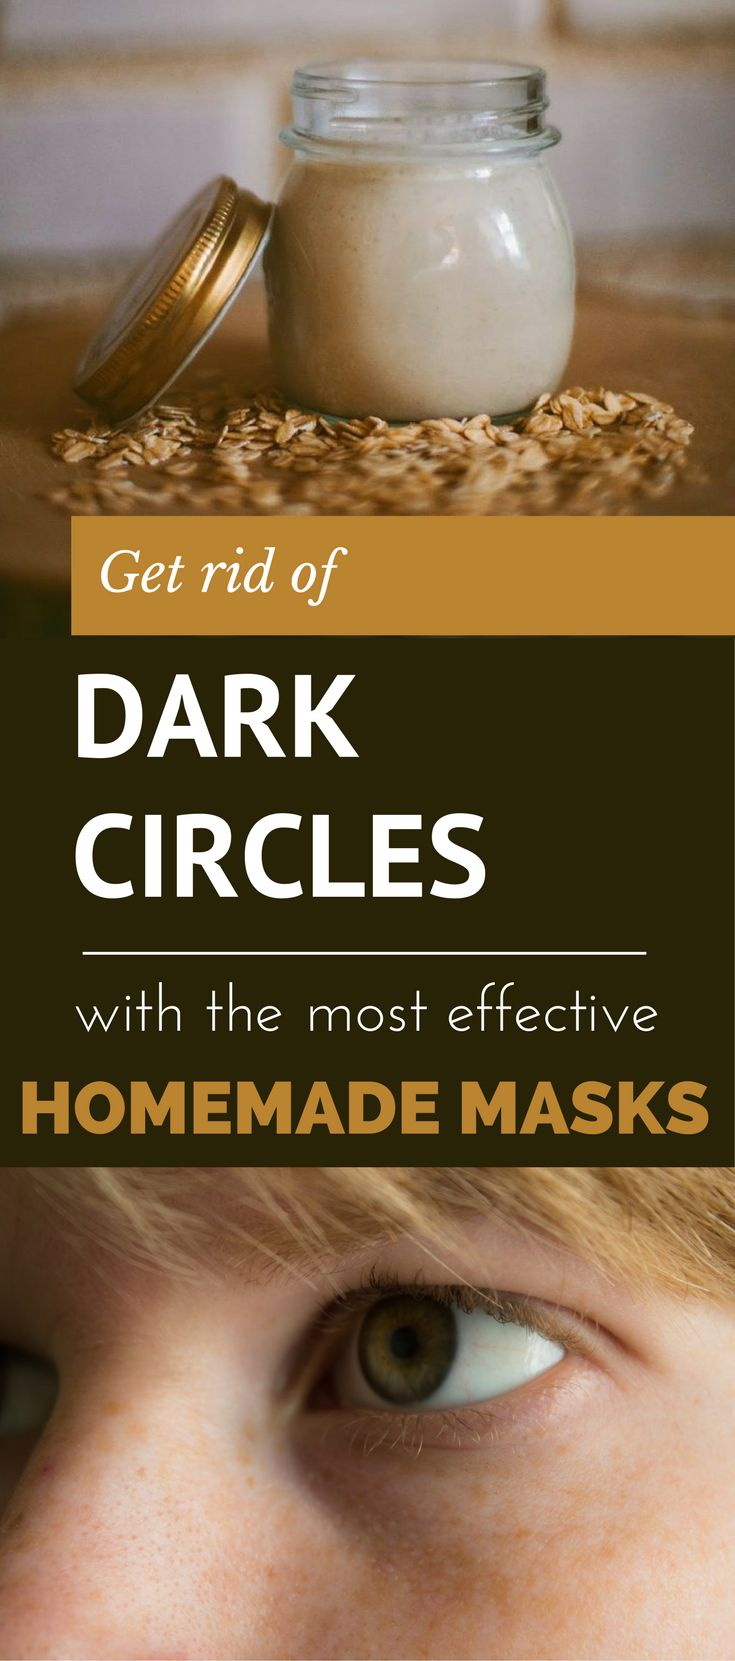 Get Rid of Dark Circles with the Most Effective Homemade Masks